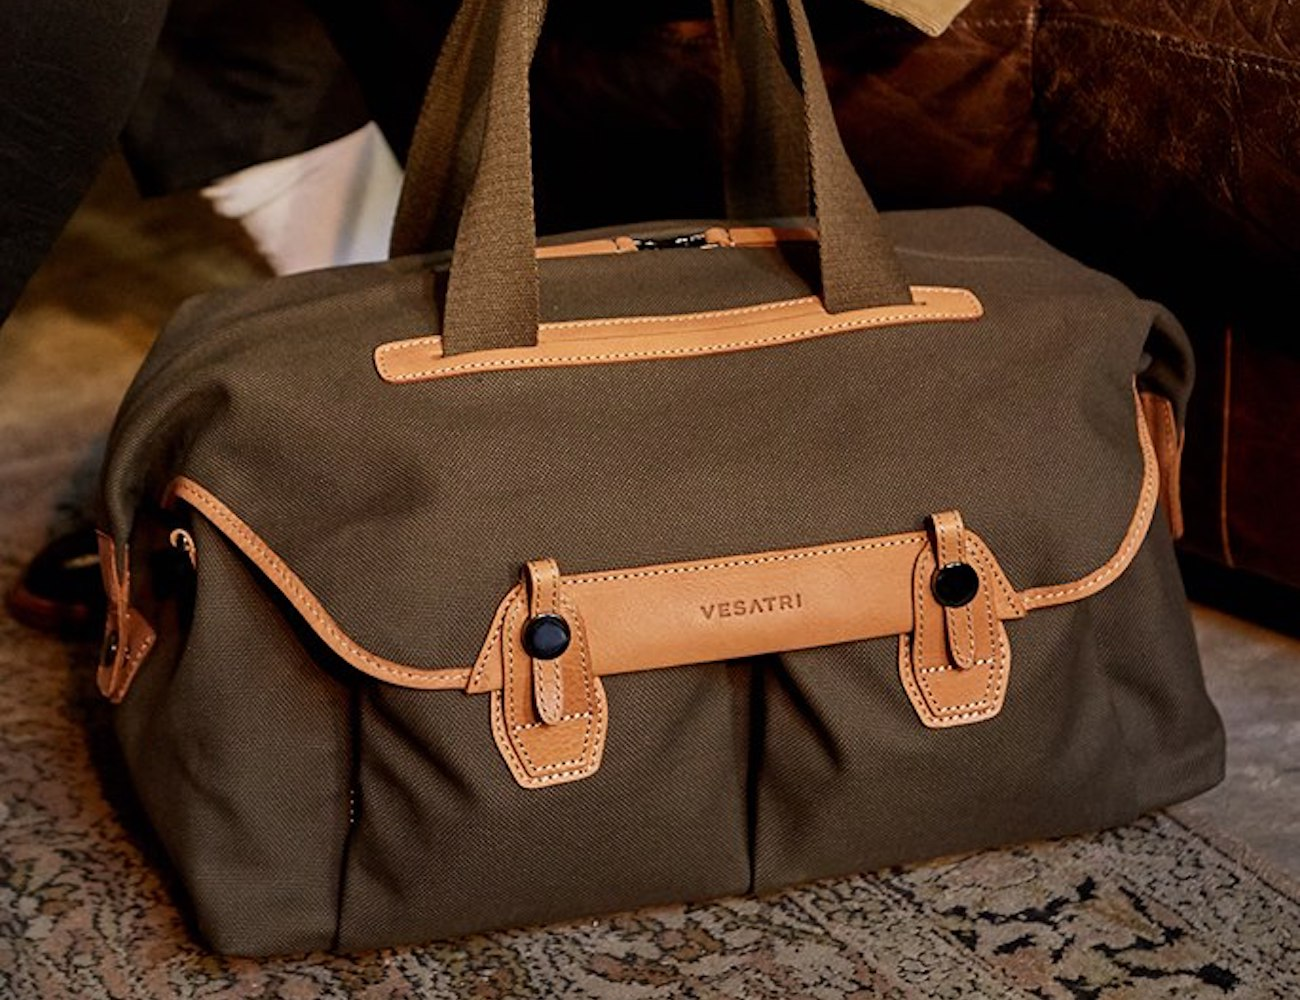 Vesatri Signature Weekend Duffel Bag